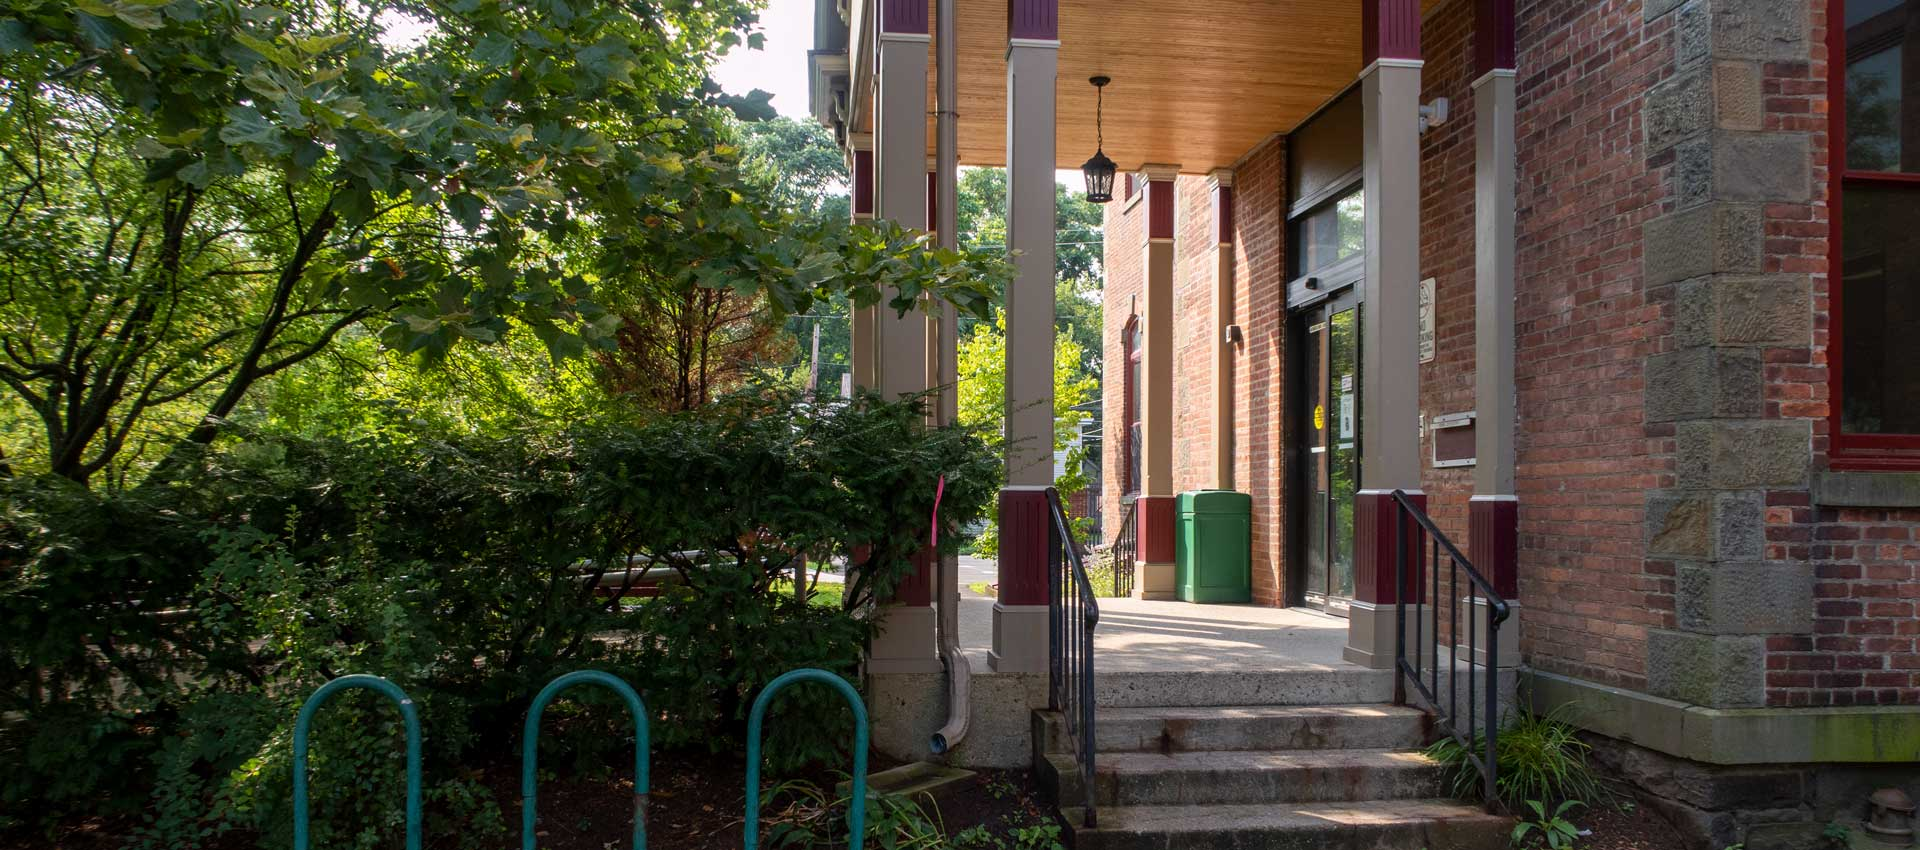 side entrance to library with stairs and greenery